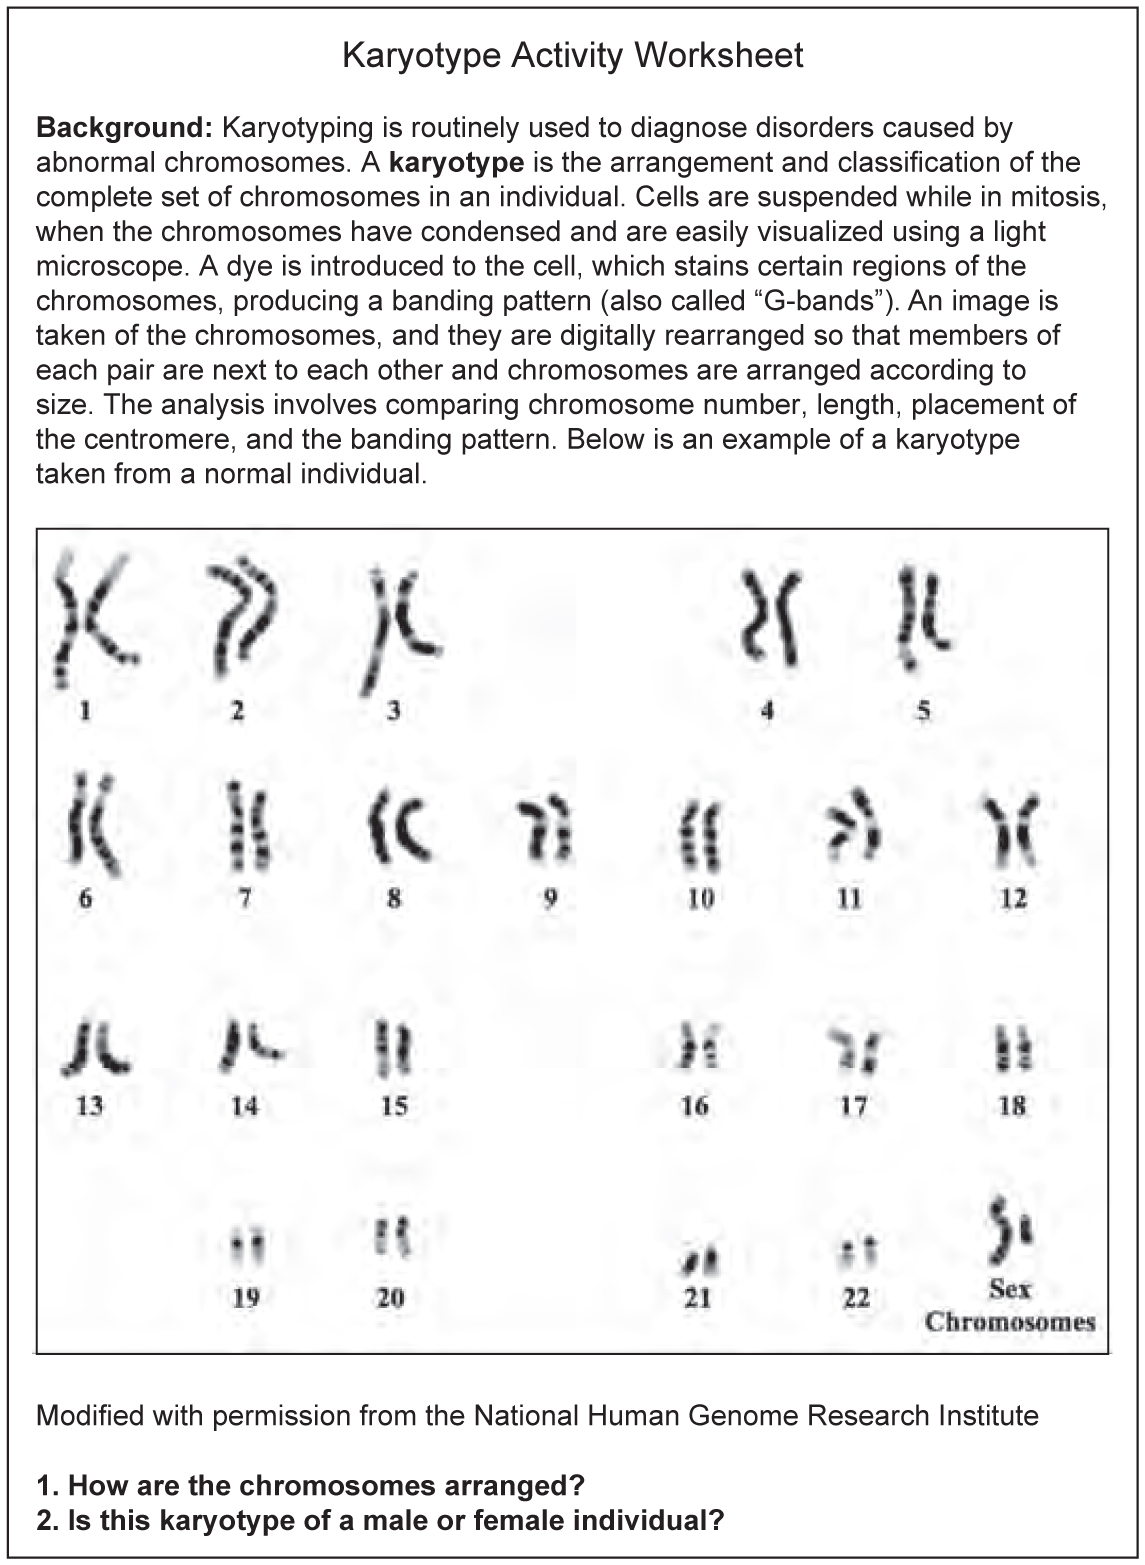 Dna Base Pairing Worksheet Answers And Insights - Page 2 ...